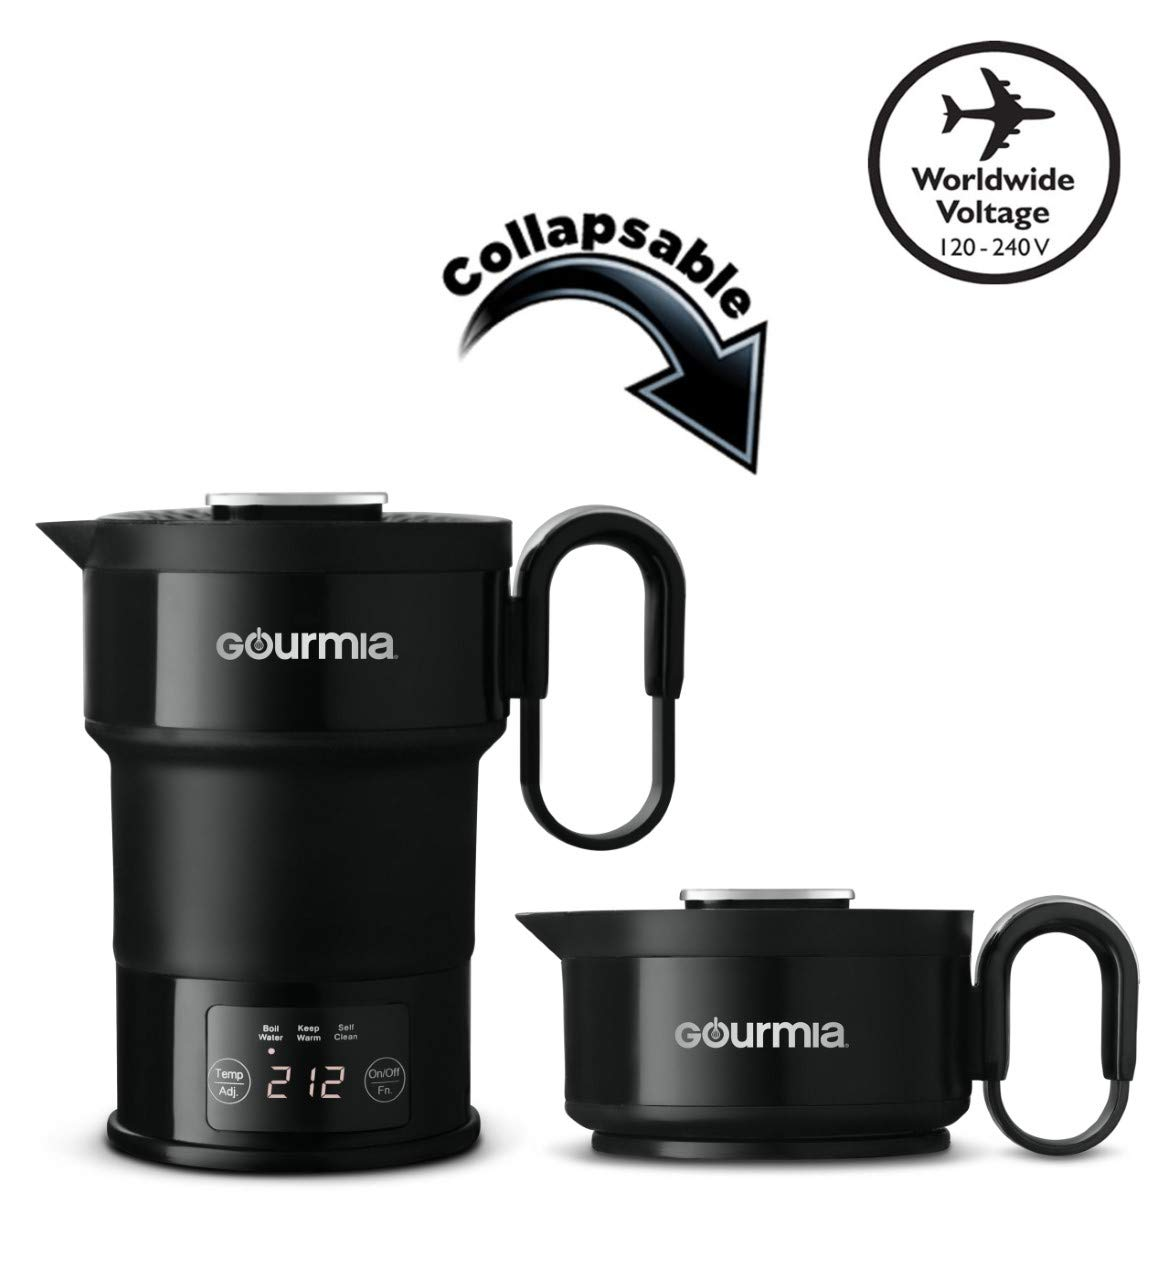 Gourmia GDK368 Digital Electric Collapsible Travel Kettle – Foldable Portable – Dual Voltage – 3 Function- Boils, Keeps Warm Self Cleans – Fast Boil – Water Heater For Coffee, Tea More – Food Grade Silicone – Boil Dry Protection – 20 oz capacity – Black